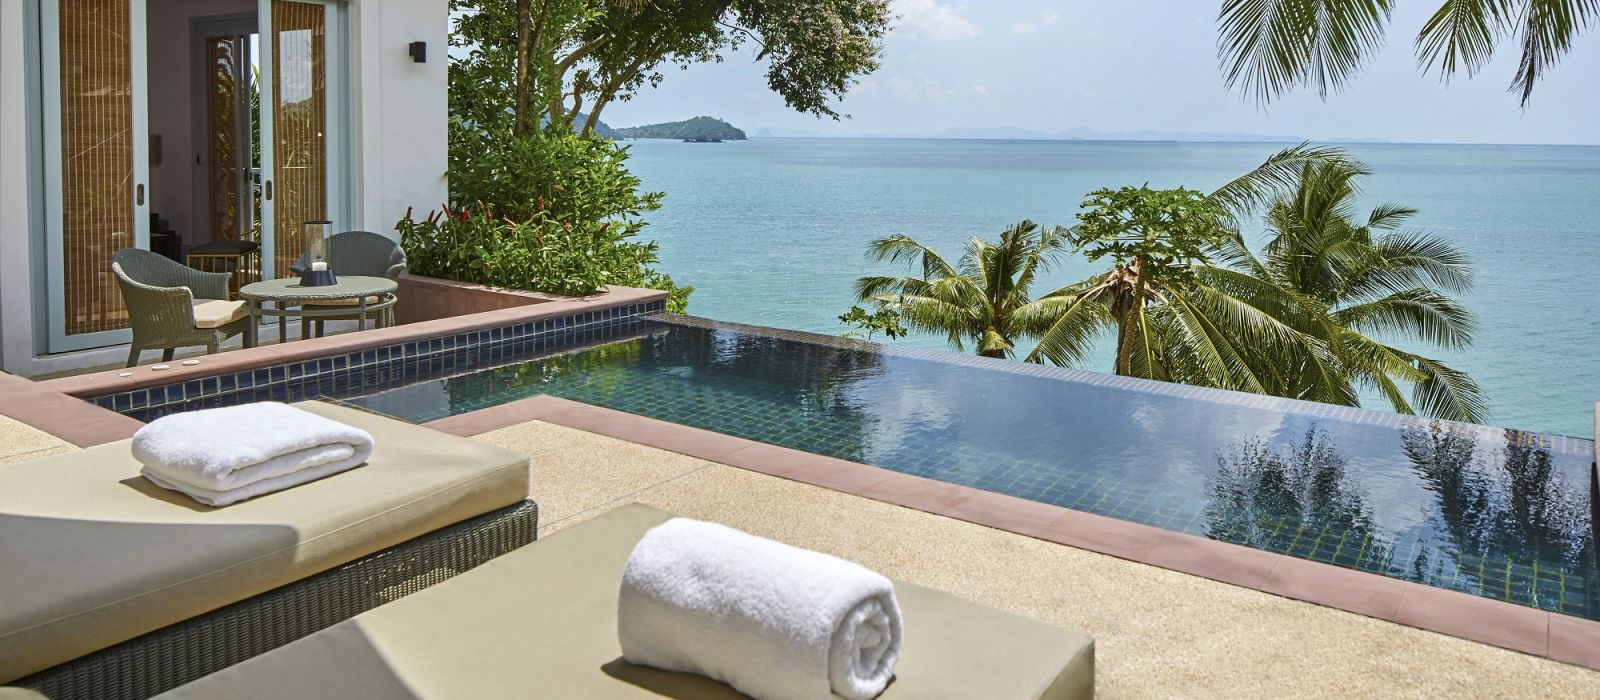 Luxury Spa Getaway in Thailand Tour Trip 4